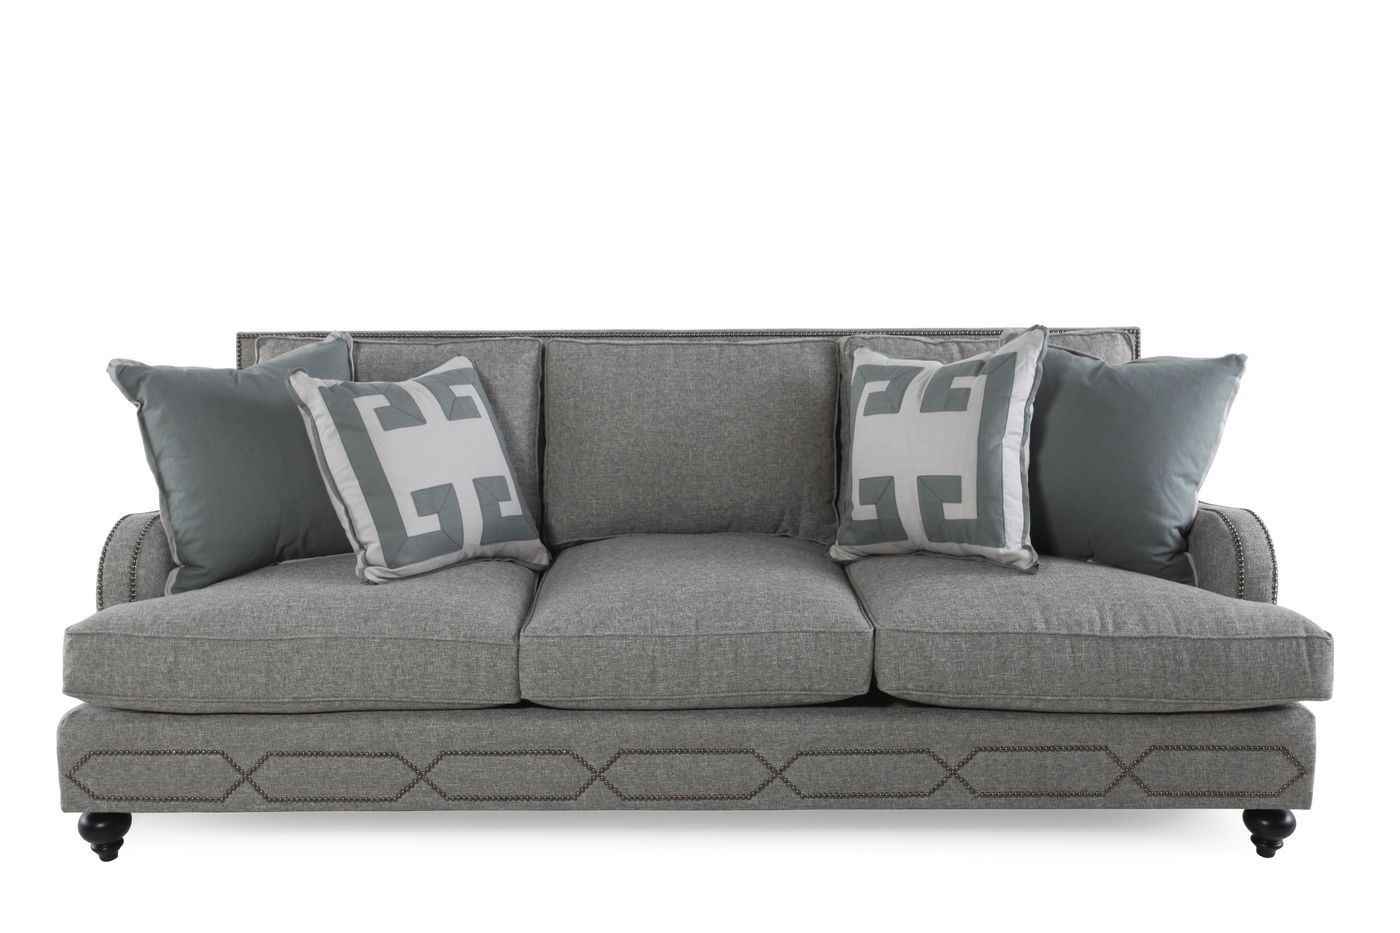 Awesome Nailhead Accented 95 Sofa In Dove Gray Home Decor Sofa Gmtry Best Dining Table And Chair Ideas Images Gmtryco